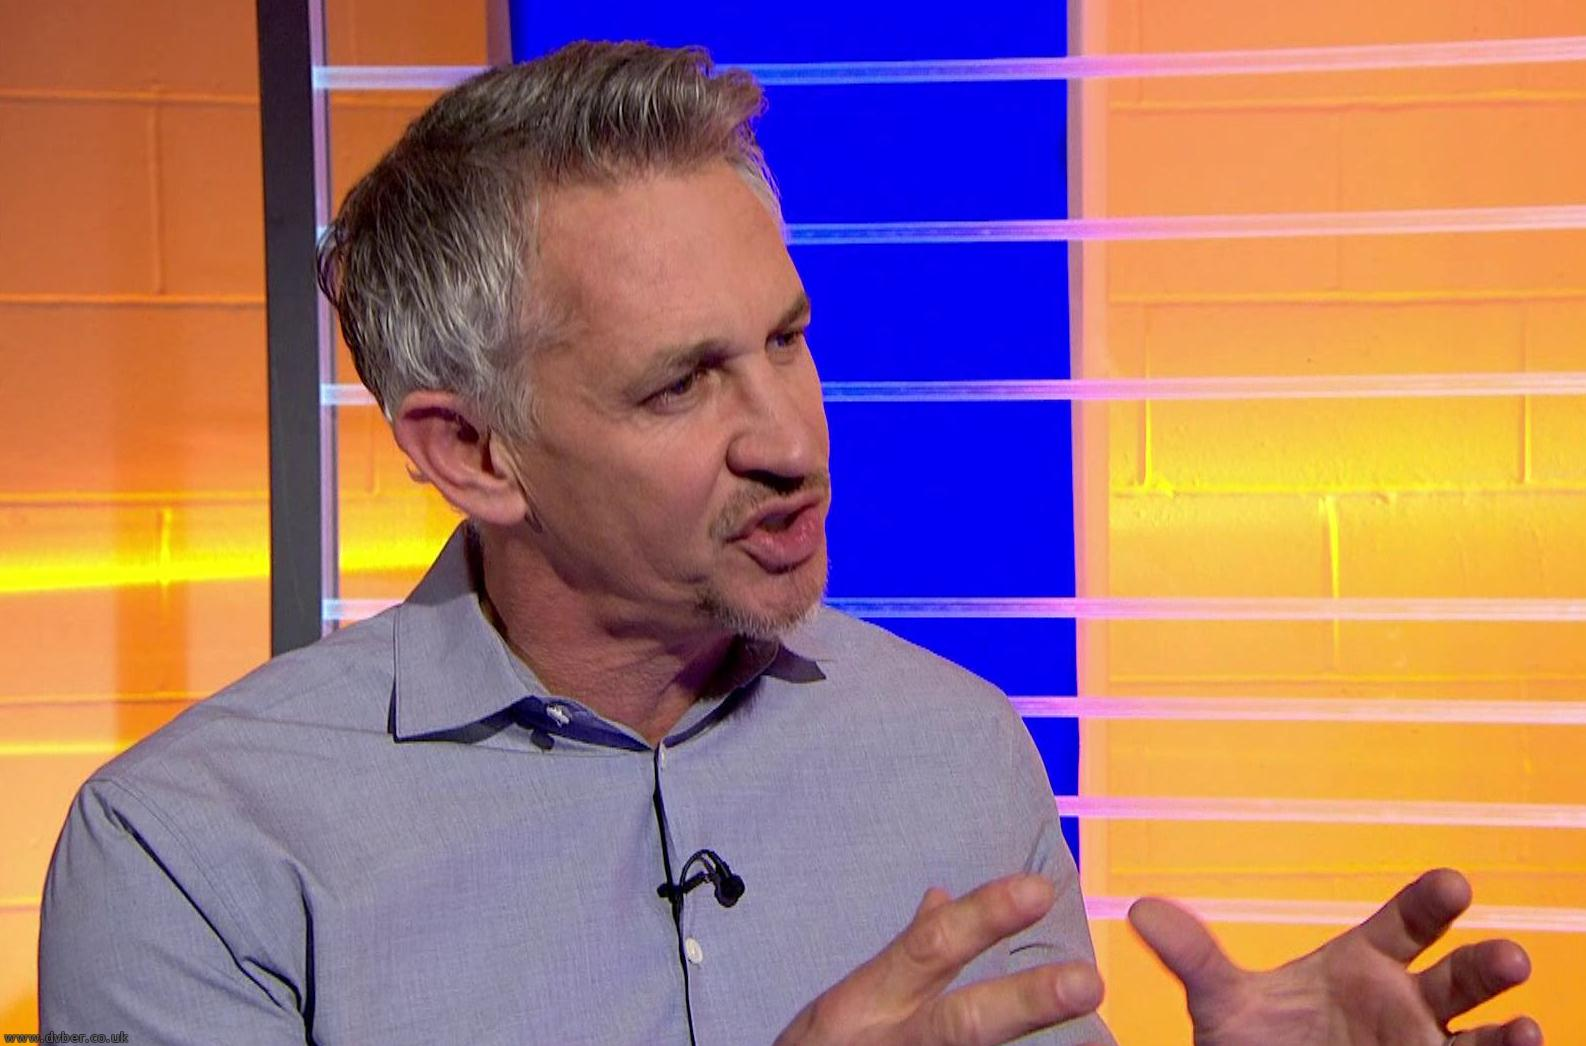 Gary Lineker on Match of the Day (BBC ONE N West)